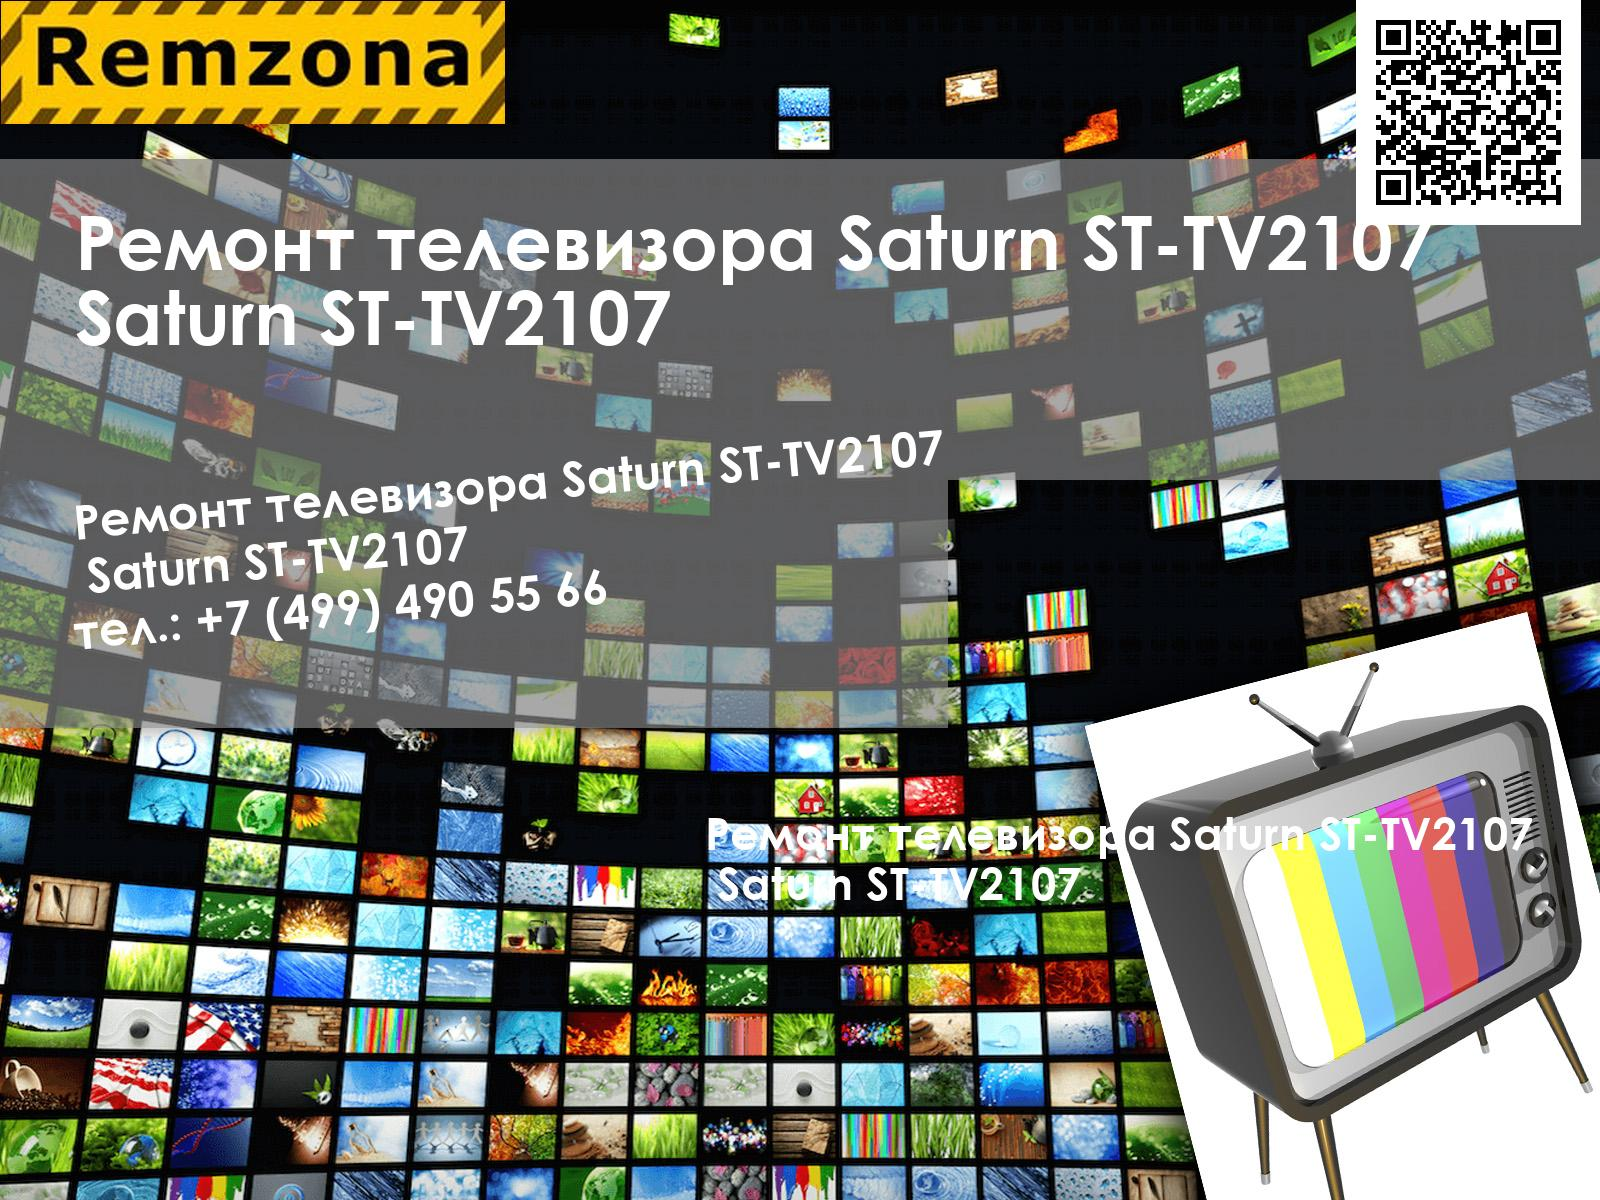 Ремонт телевизора Saturn ST-TV2107